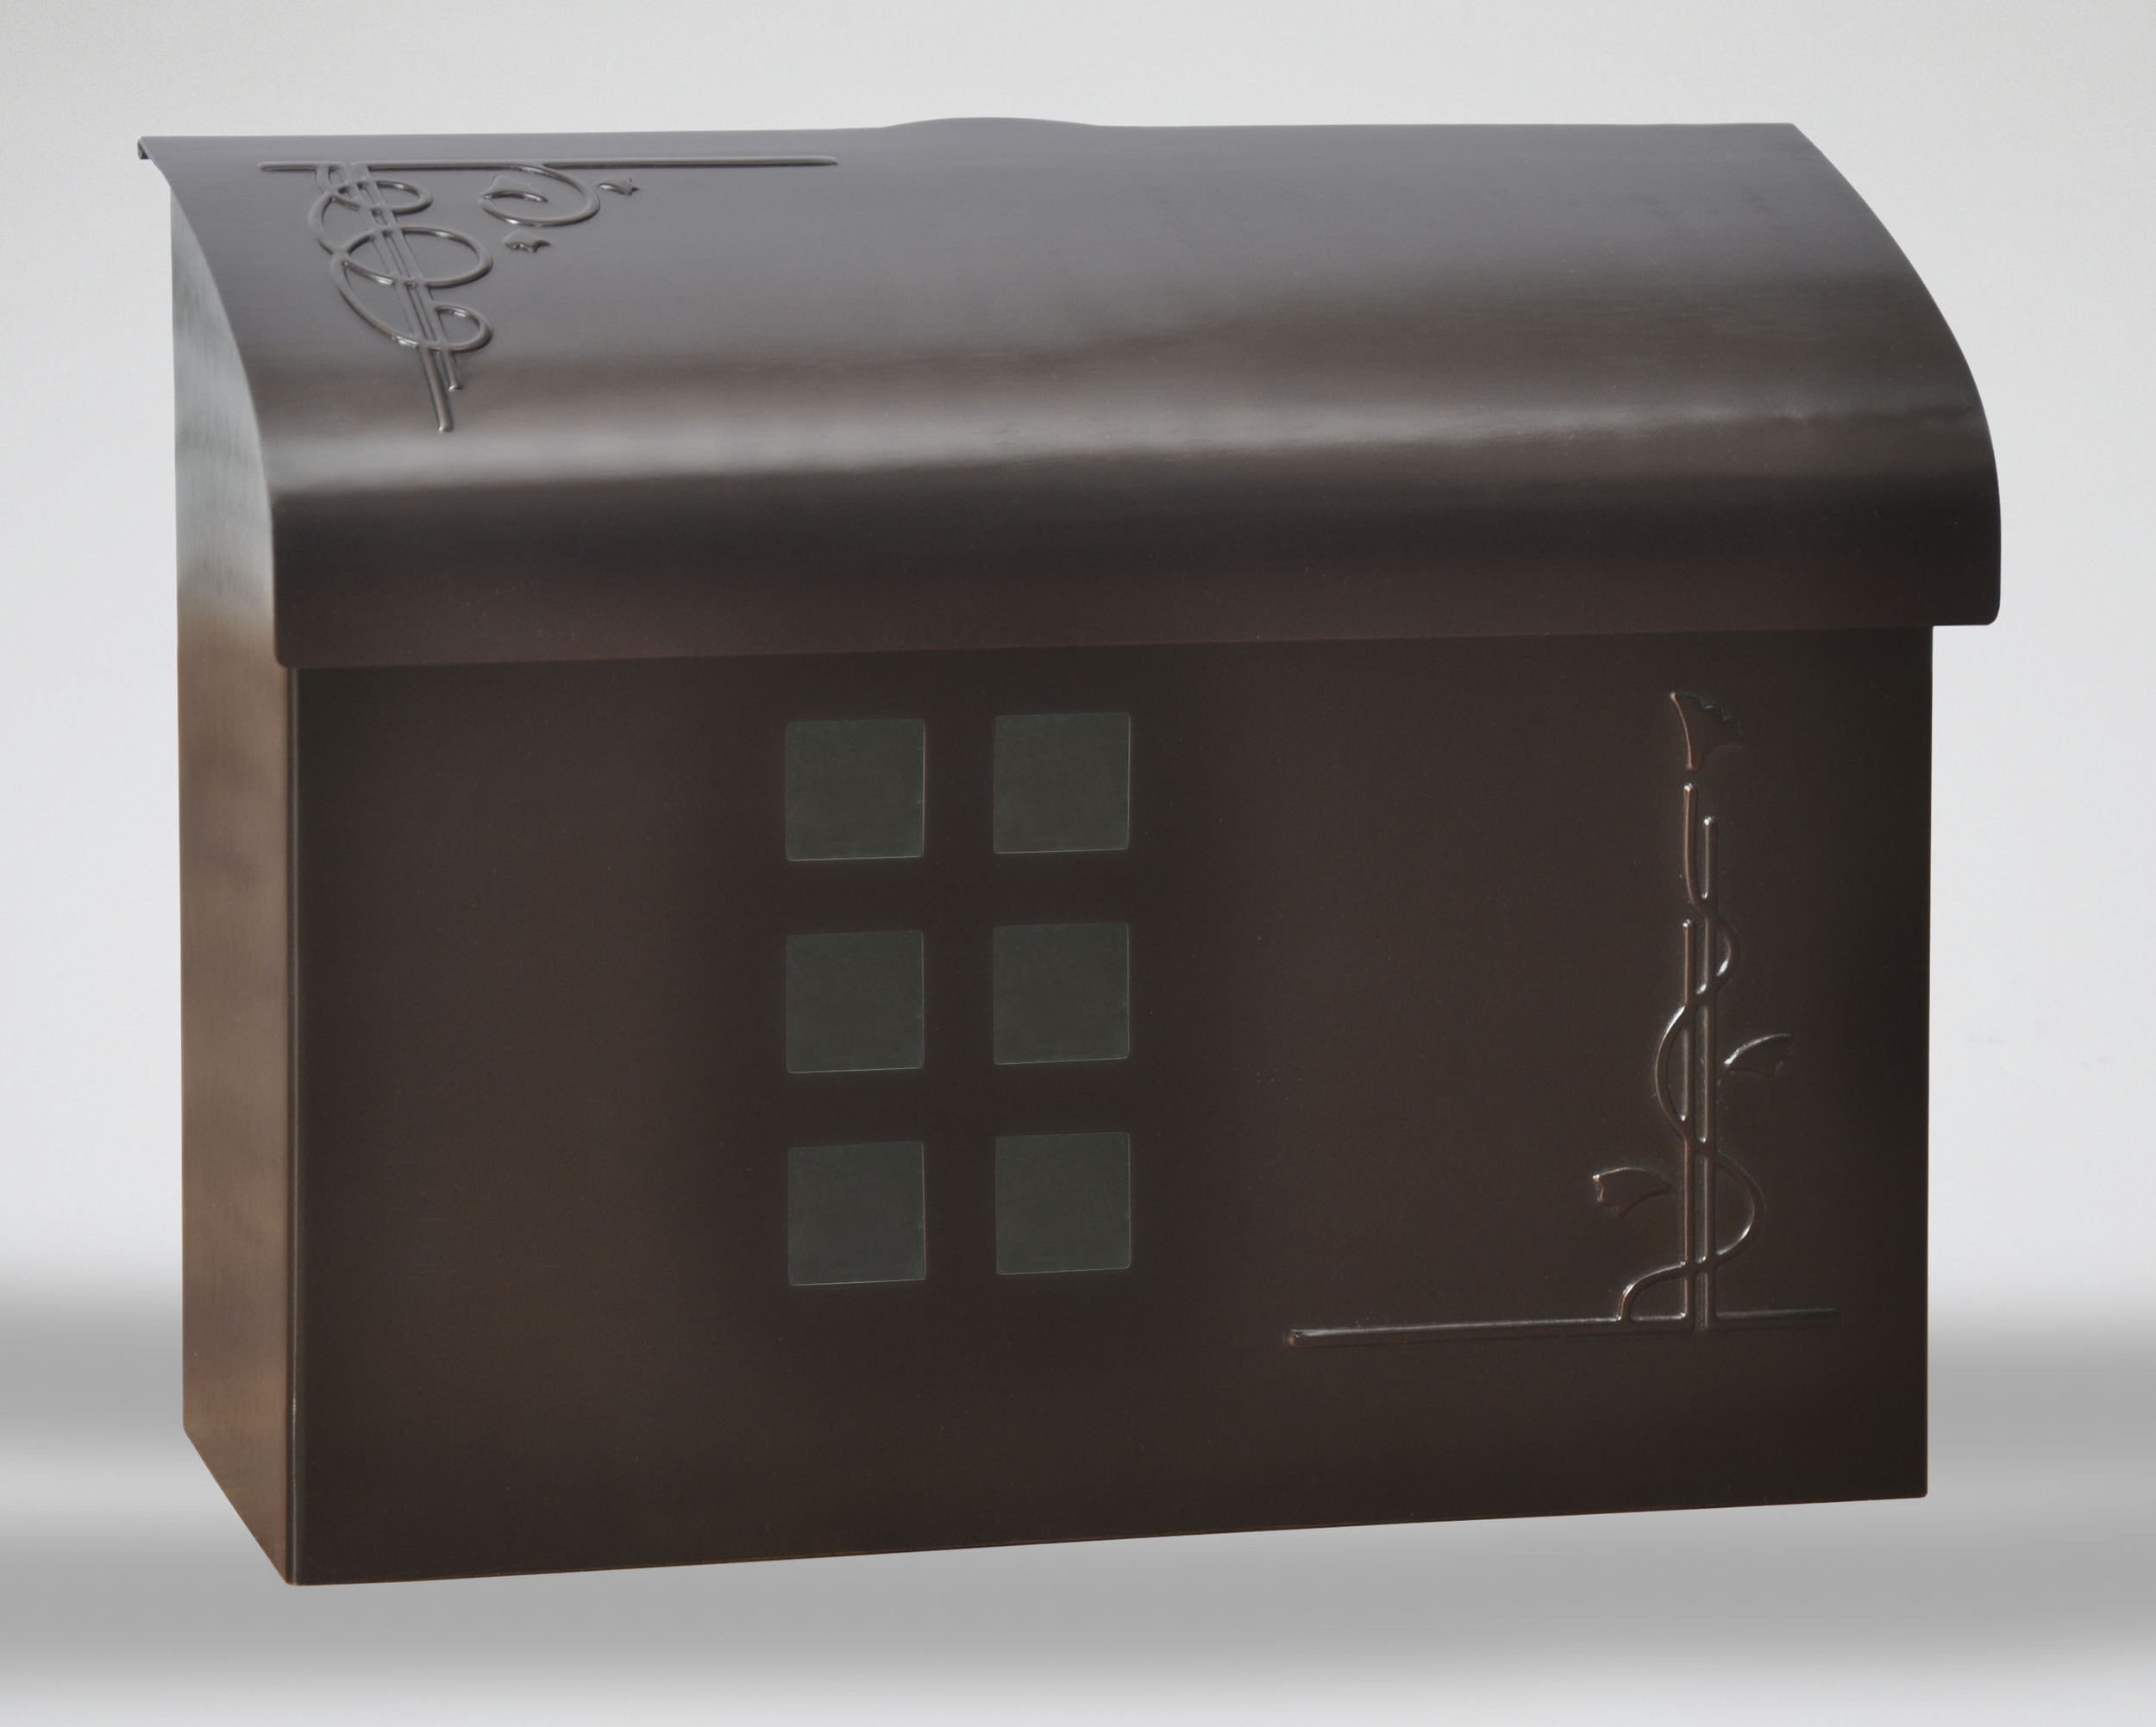 212E7BZ Arts & Crafts wall mount mail box.Size: 14.5 W 11 H 5 D. Hardware included. Shown in bronze. Other finishes available.